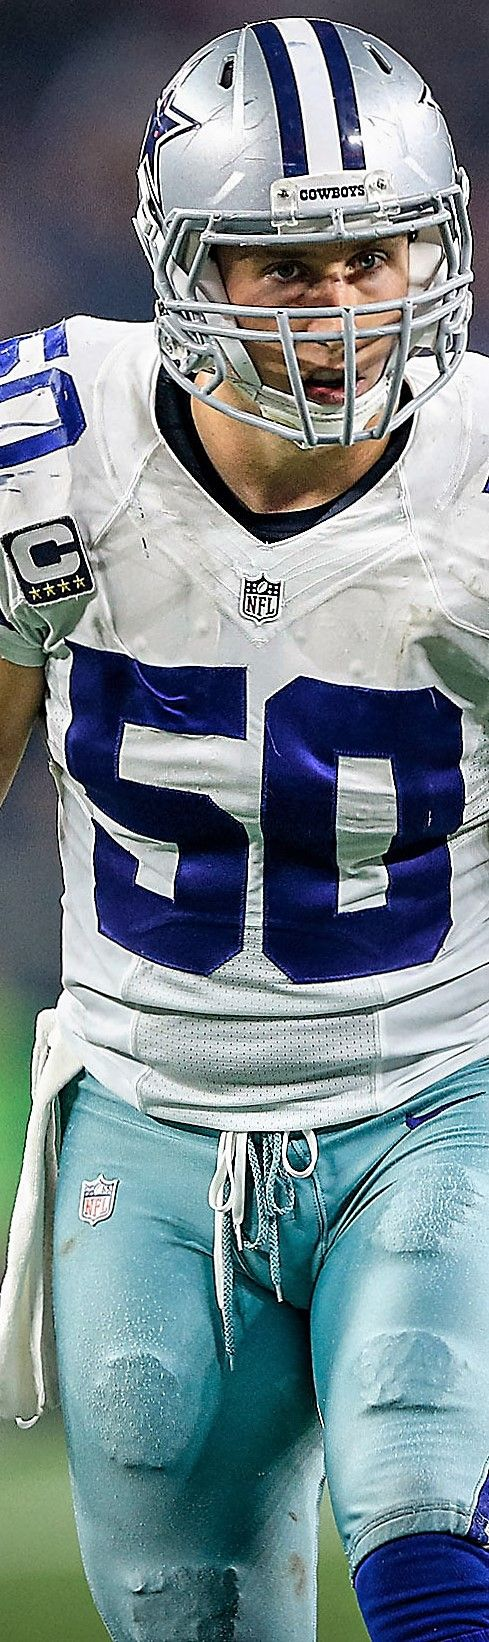 Sean Lee ... Dallas Cowboys Kings                                                                                                                                                                                 More